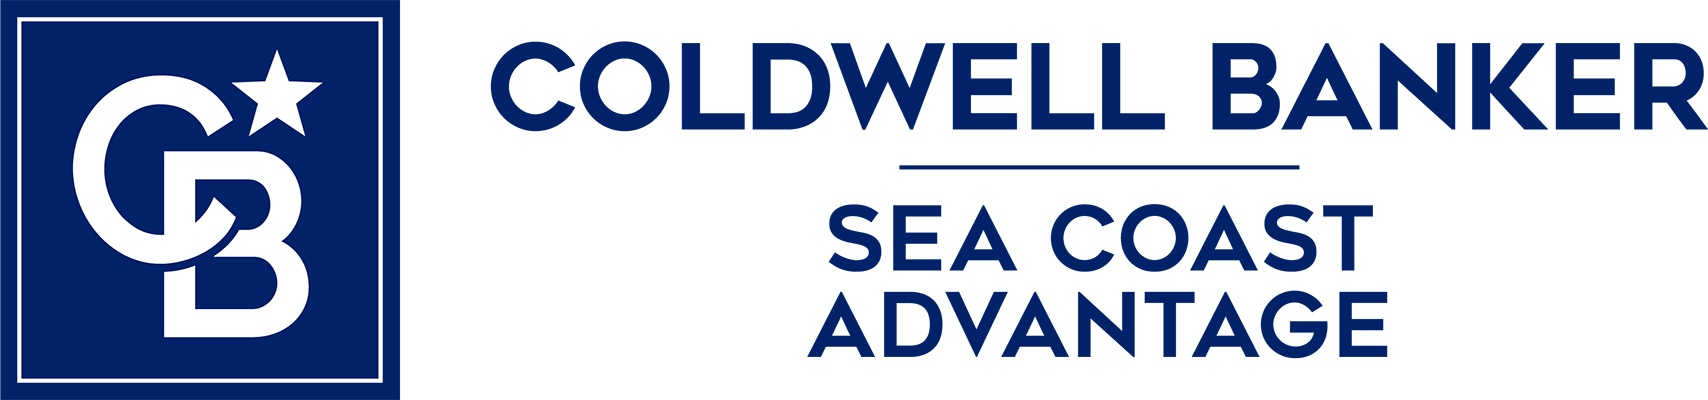 Denis Ing - Coldwell Banker Sea Coast Advantage Realty Logo